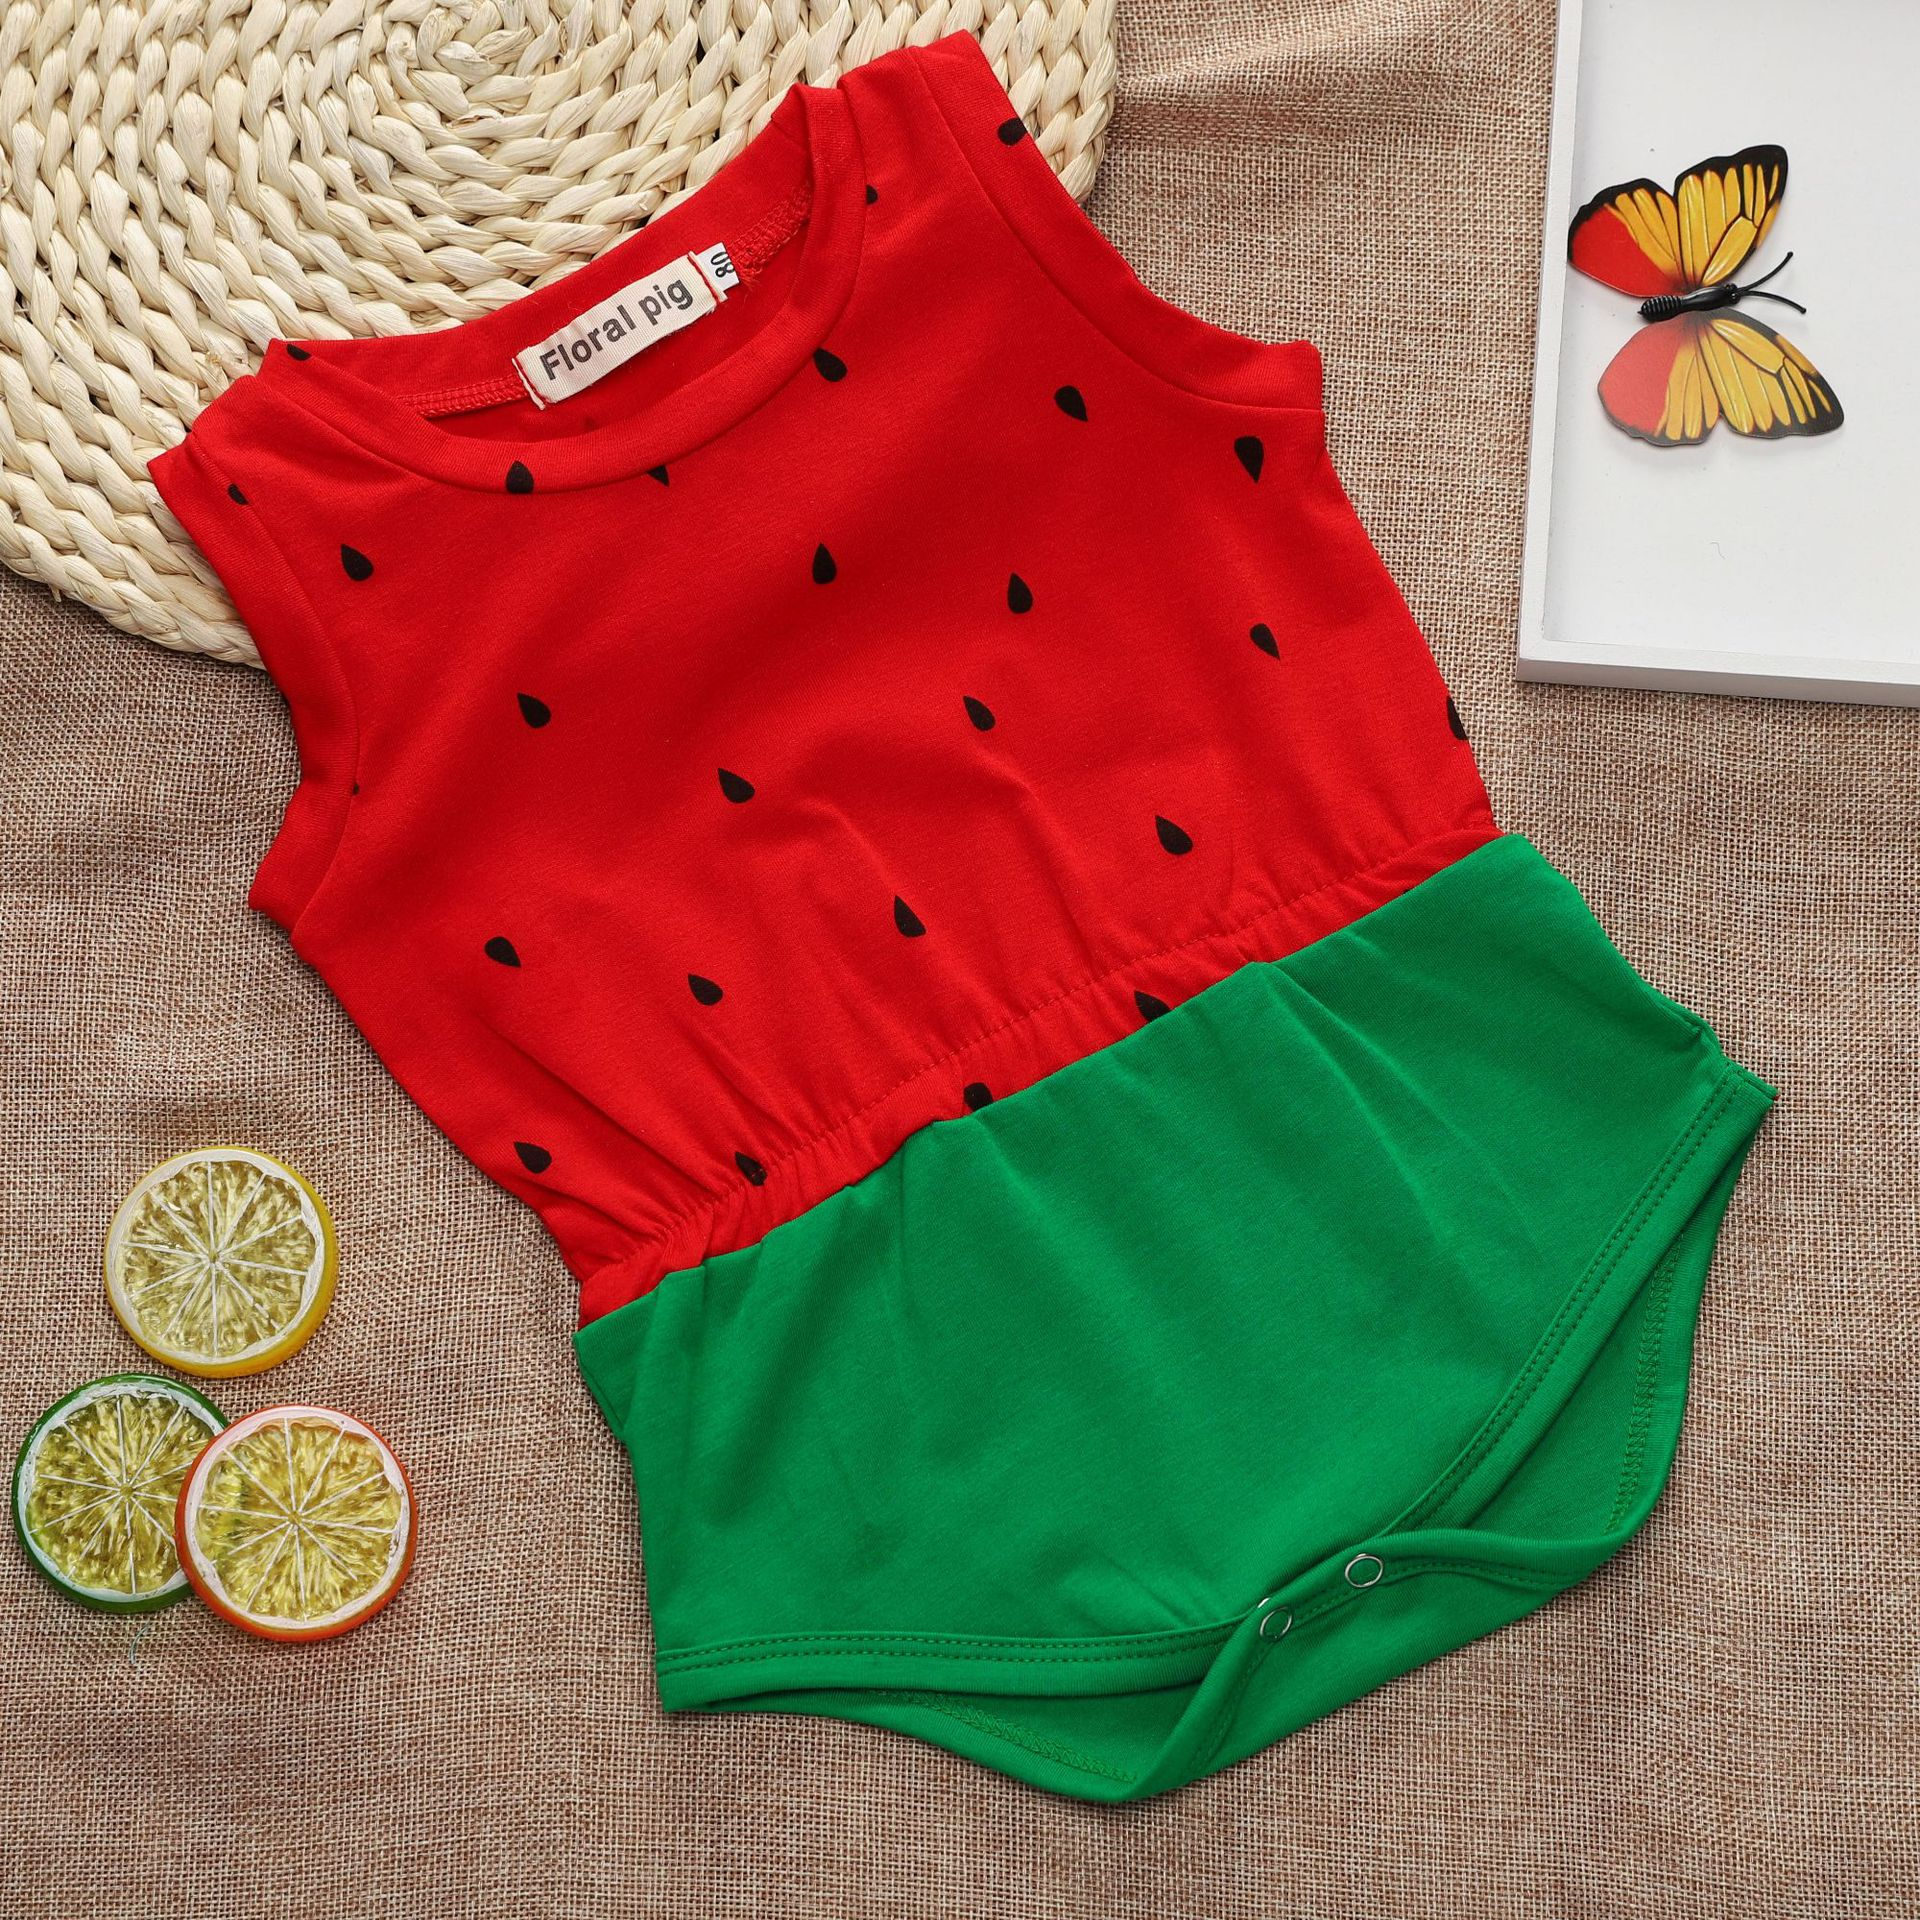 Girls Rompers 2018 Baby Clothes Cotton Infant Sleeveless Jumpersuit For Girl Princess Tutu Watermelon Pattern Romper